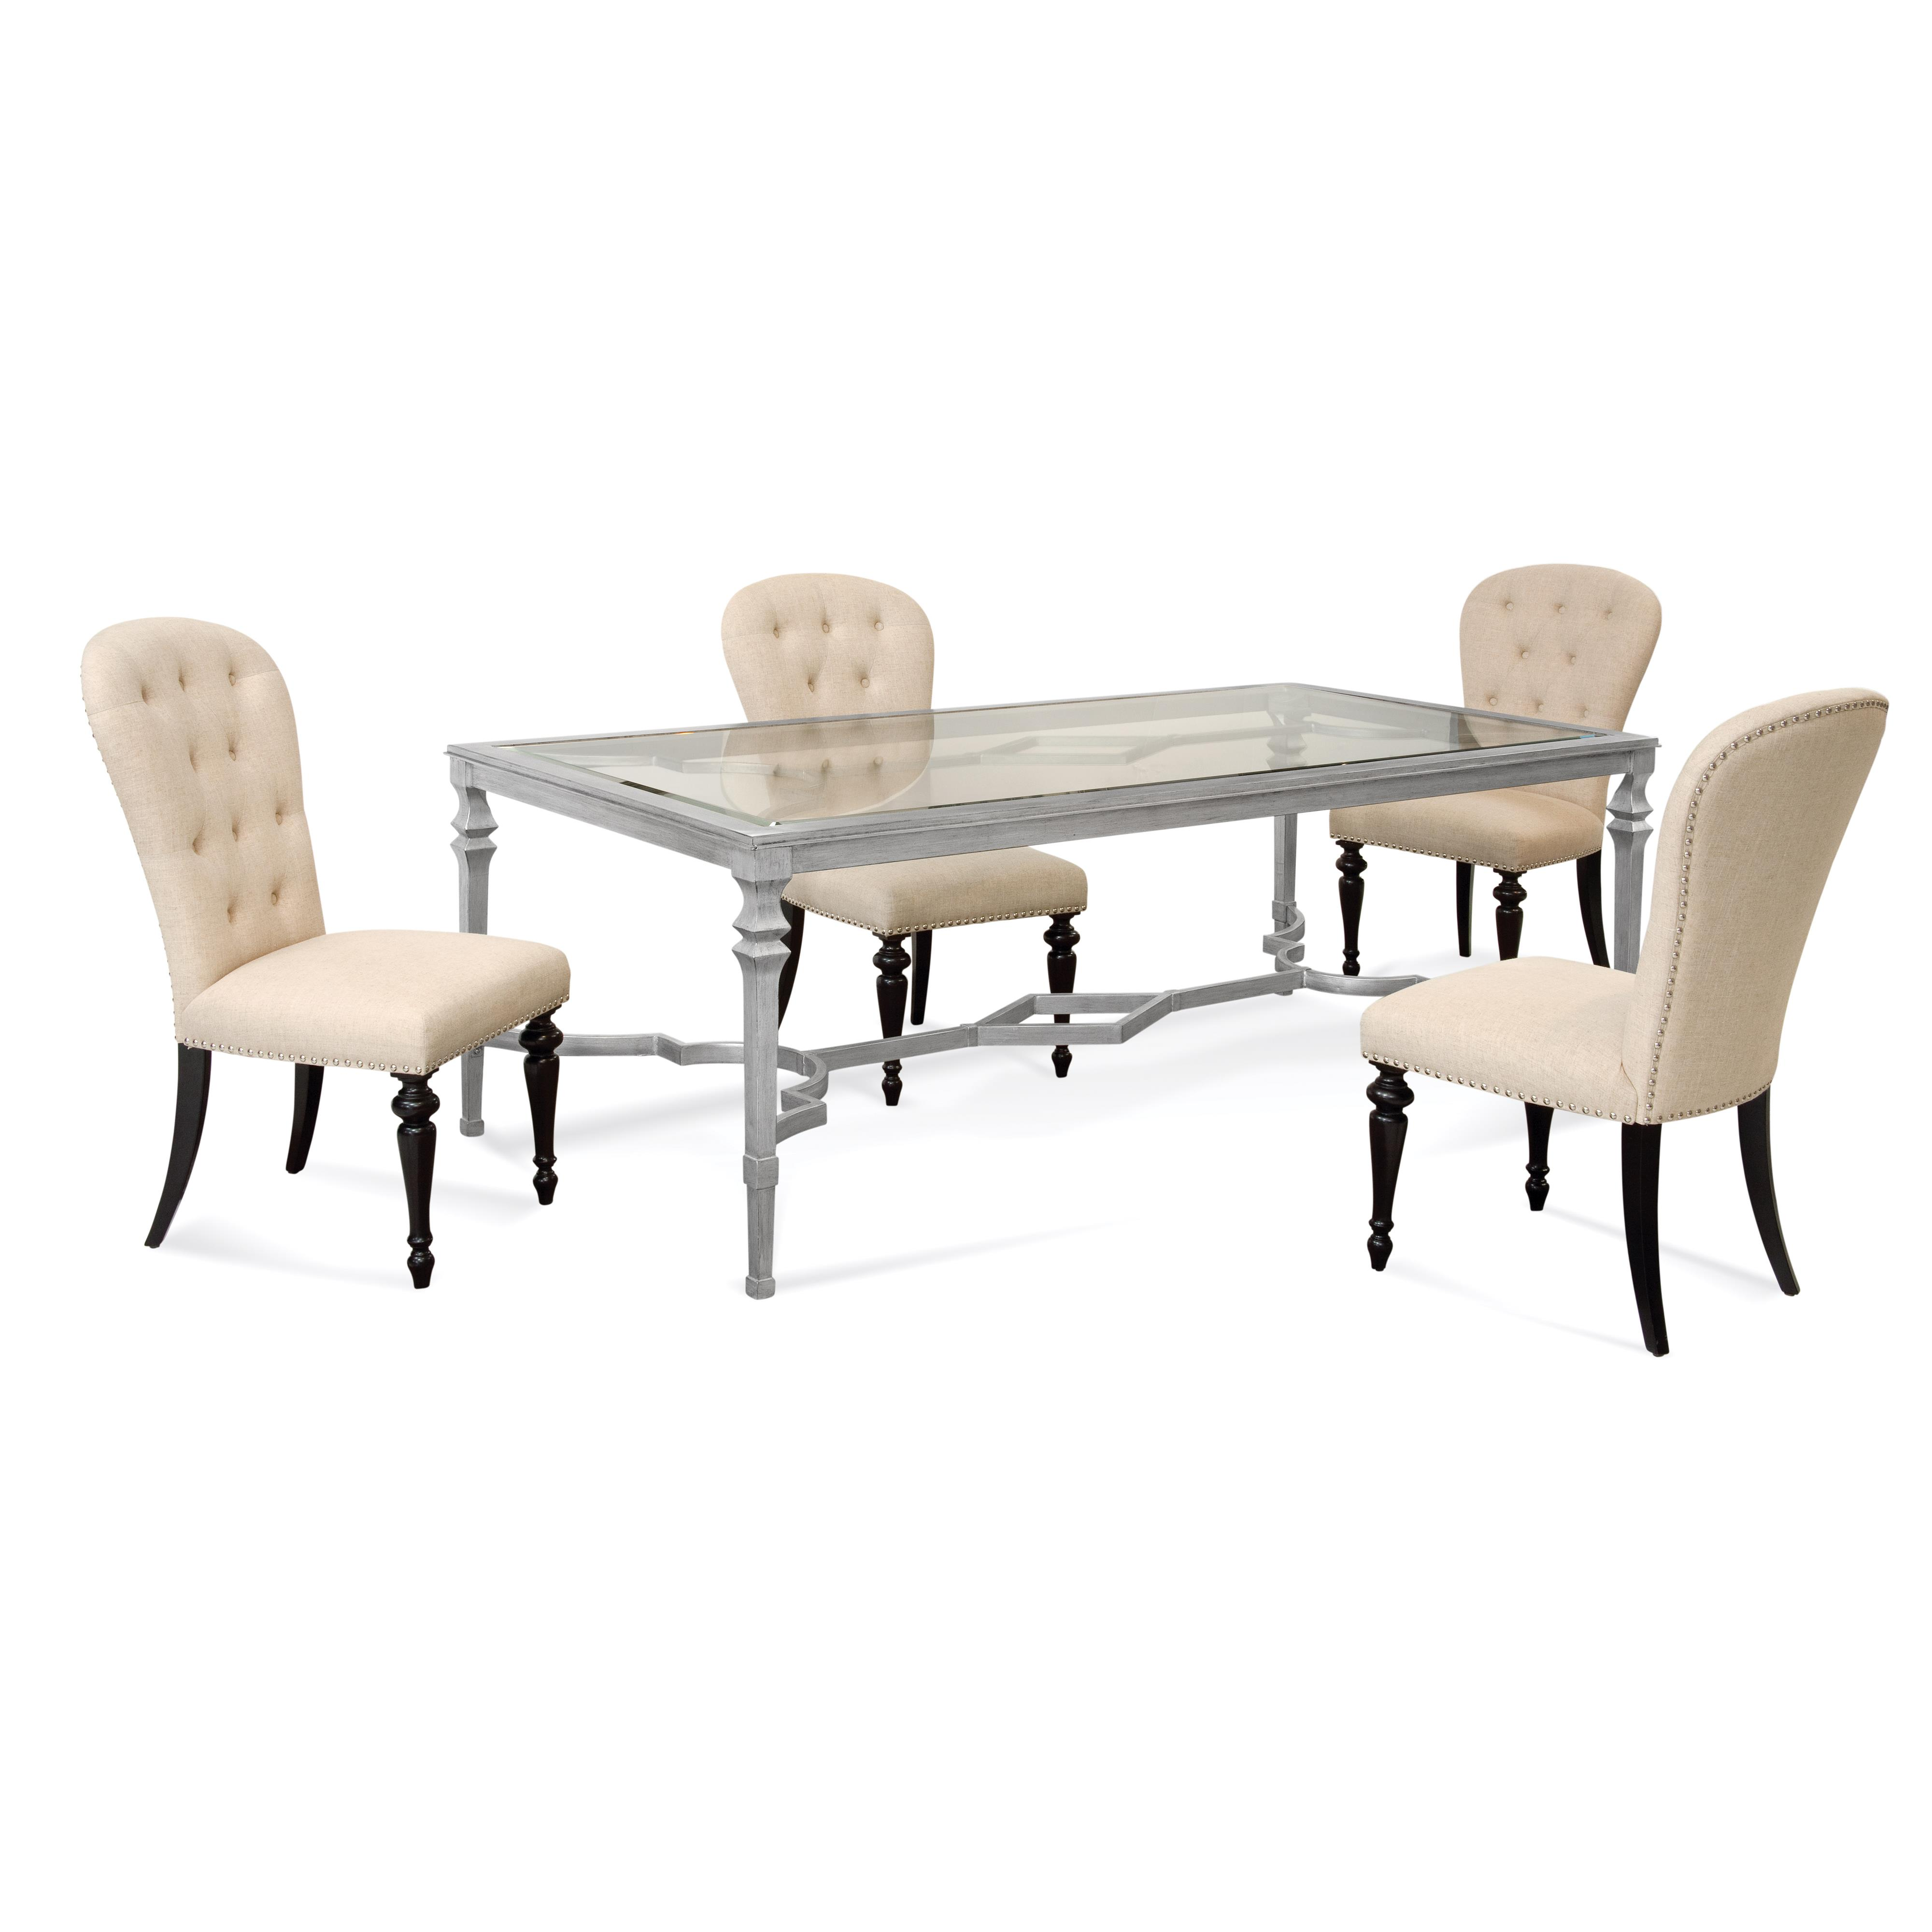 Hollywood Glam Sylvia Casual Dining Set by Bassett Mirror at Alison Craig Home Furnishings